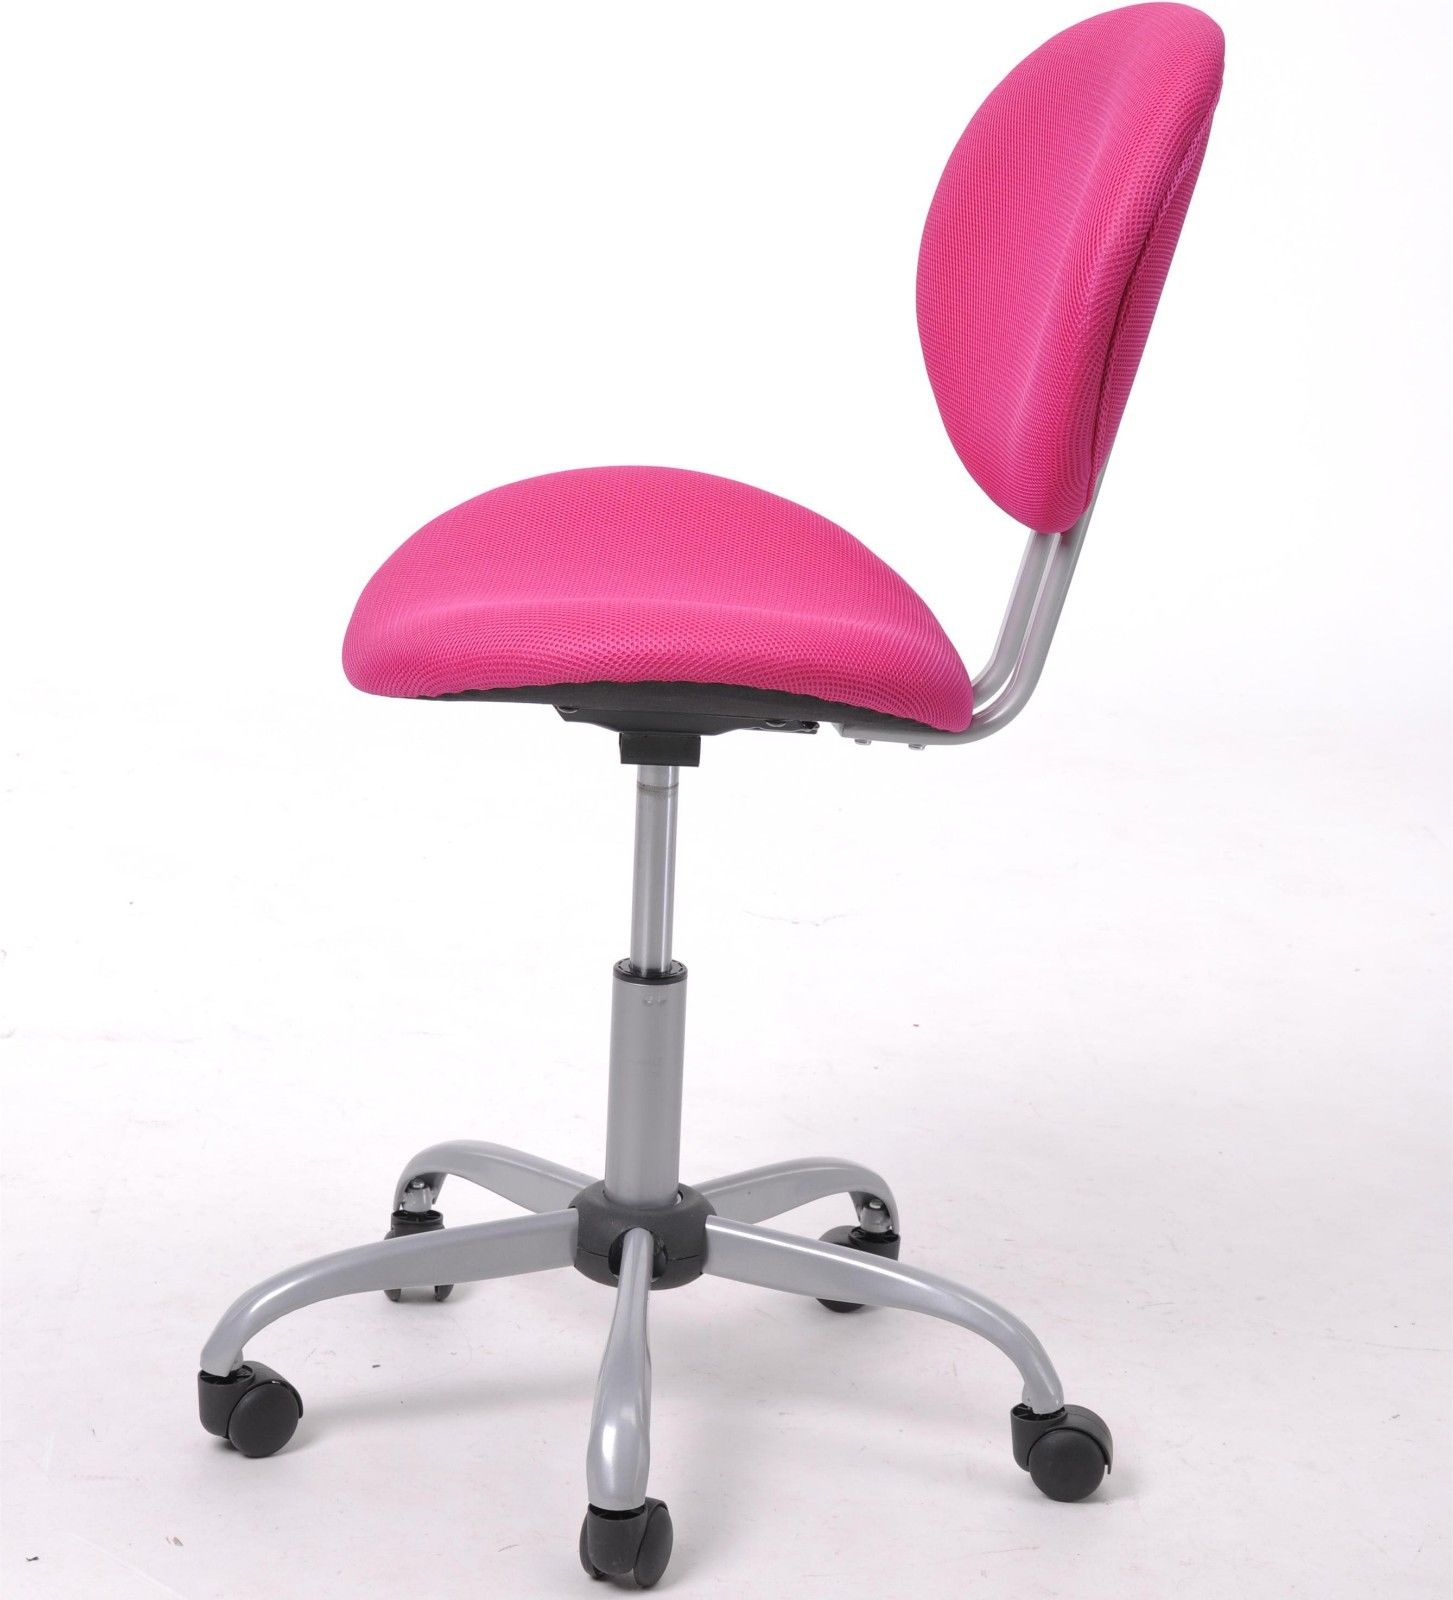 Pink Ergonomic Mesh Computer Office Chair Desk Midback Kid